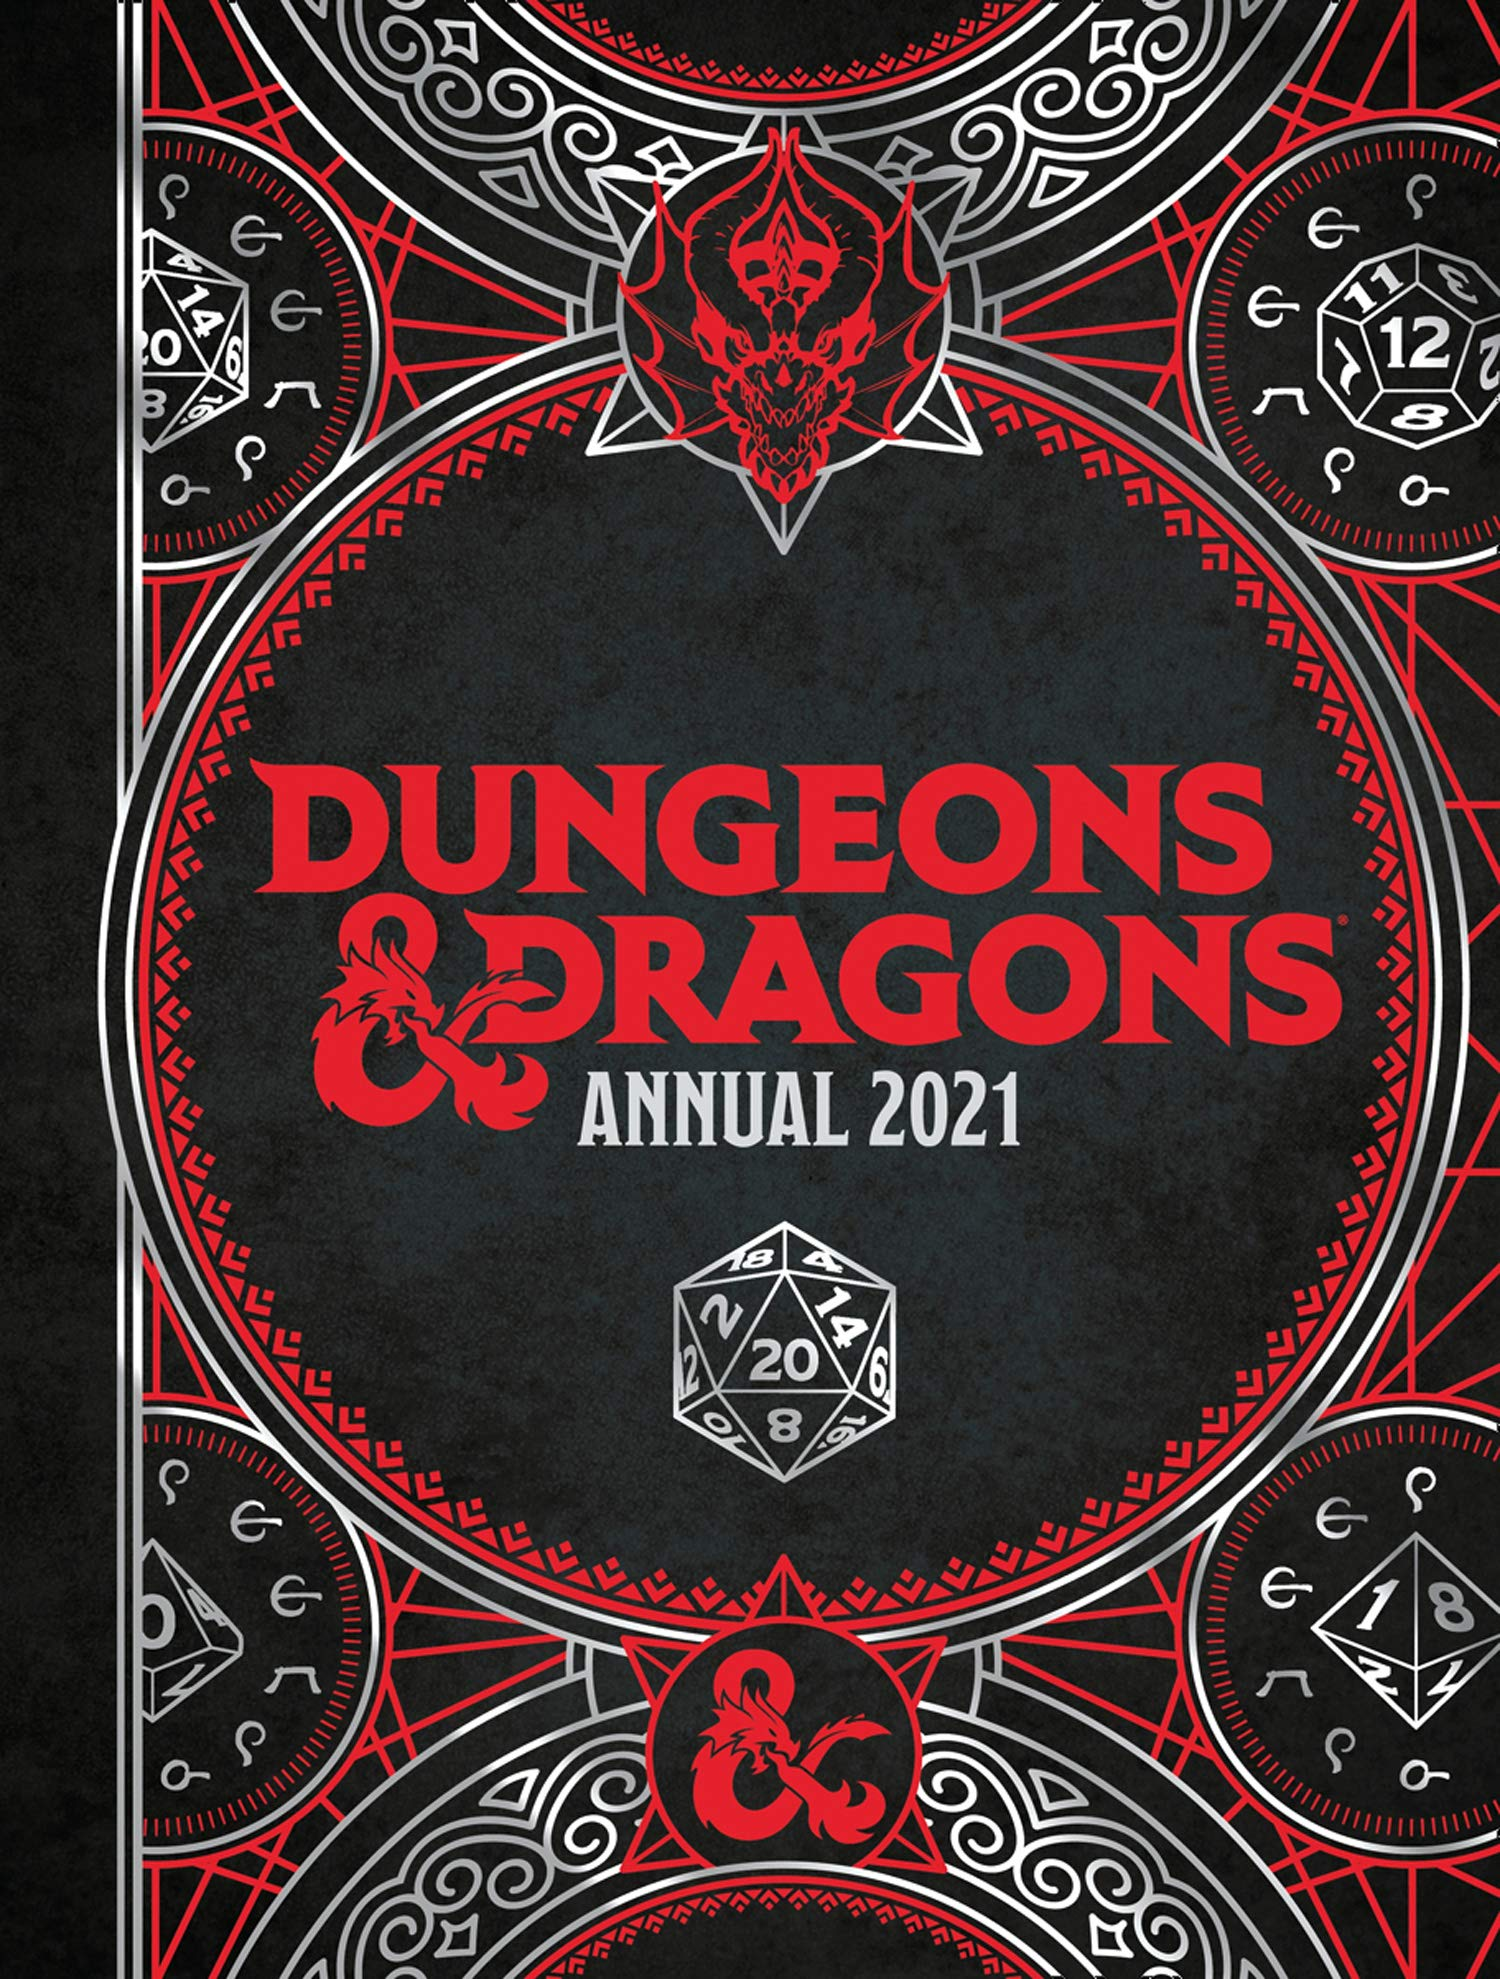 Dungeons & Dragons Annual 2021 - Hardback